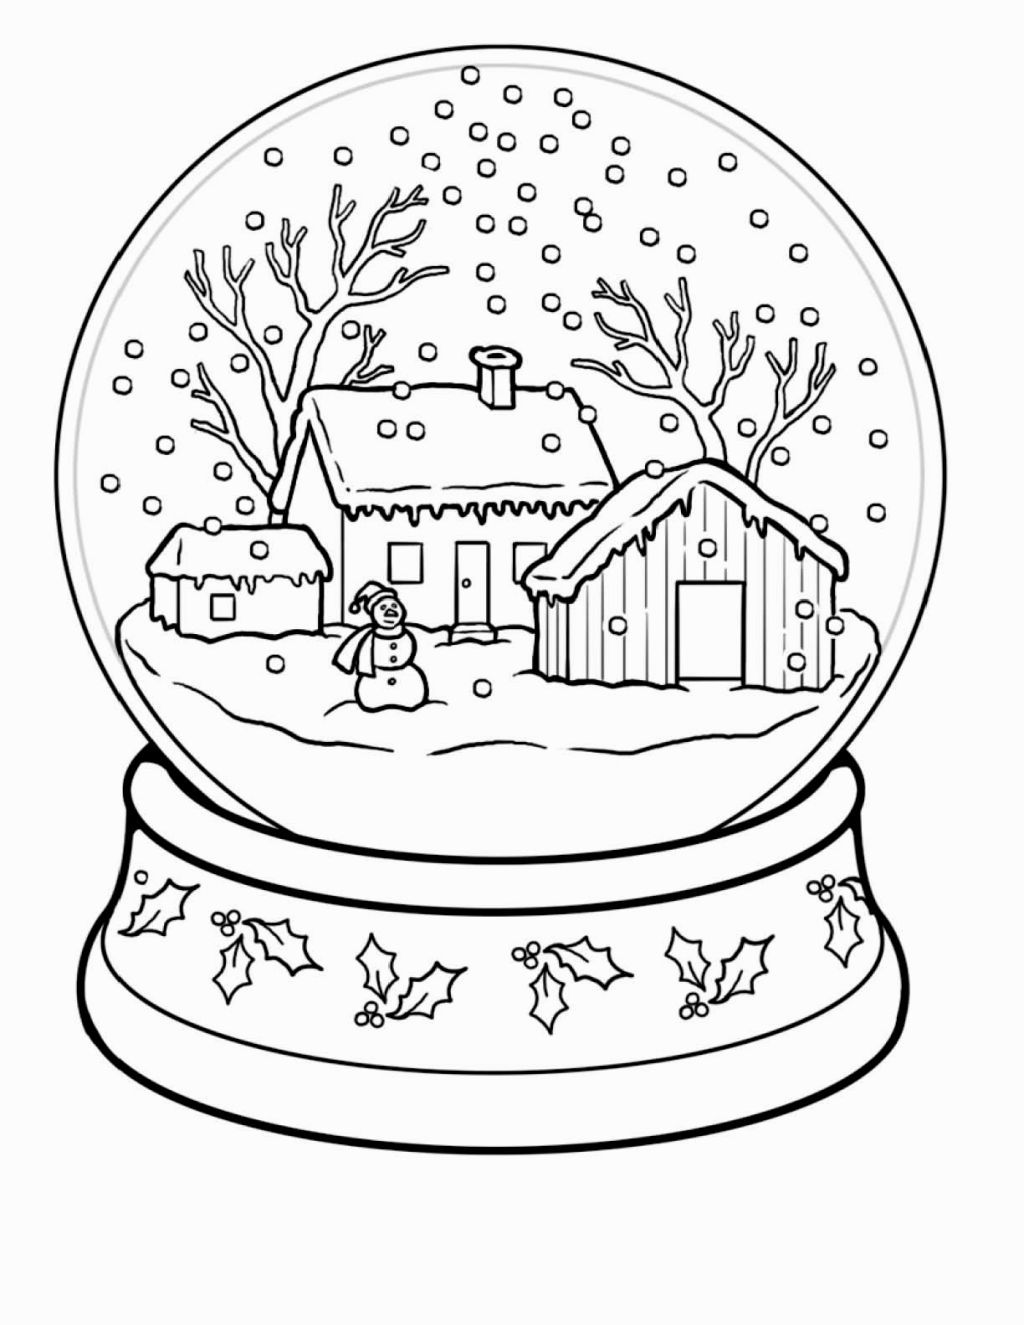 Winter Coloring Pages For Adults Coloring Pages Winter Christmas Coloring Pages Holiday Worksheets